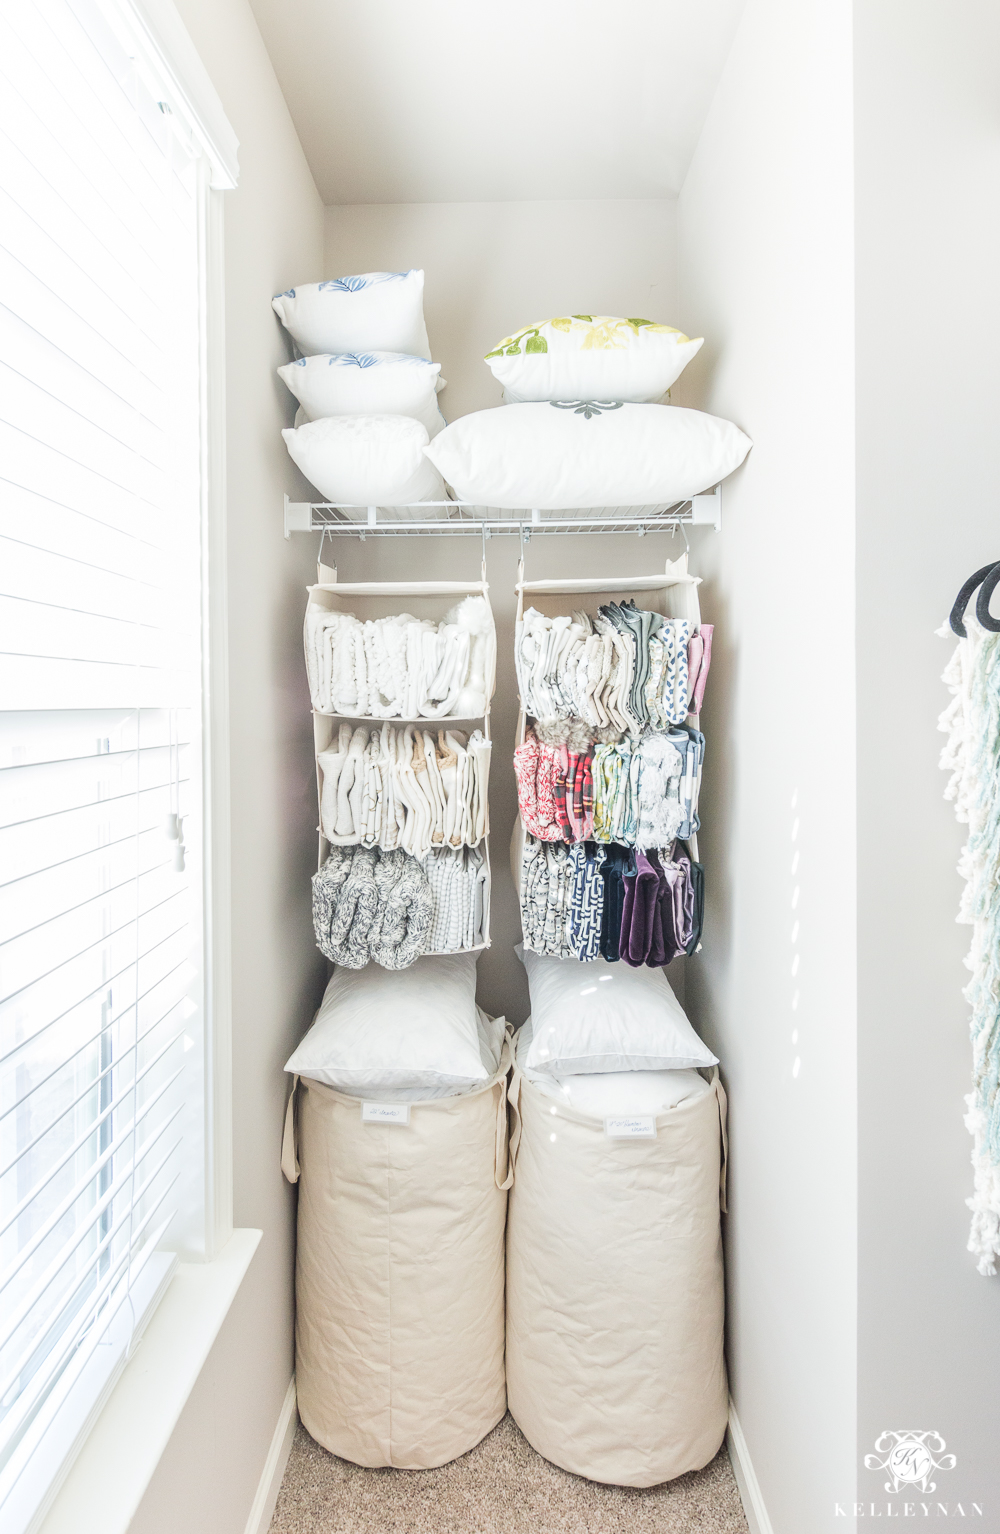 Throw pillow insert and cover organization in closet nook